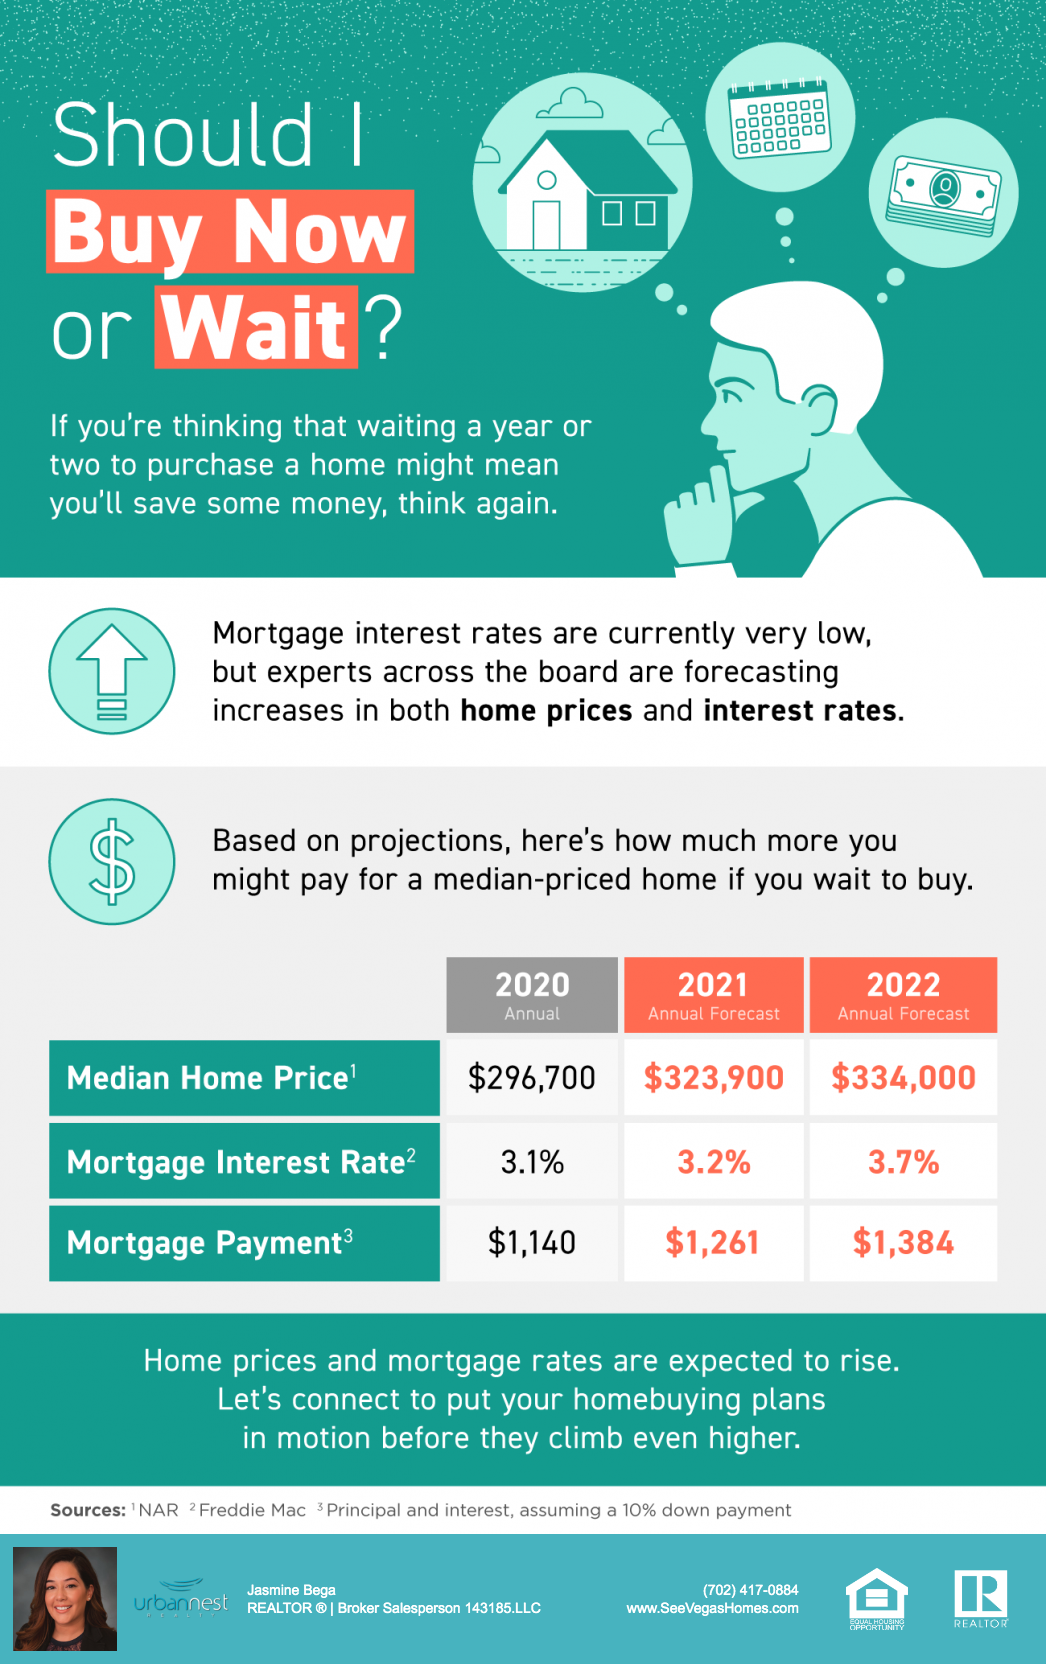 Should I Buy Now or Wait INFOGRAPHIC SeeVegasHomes